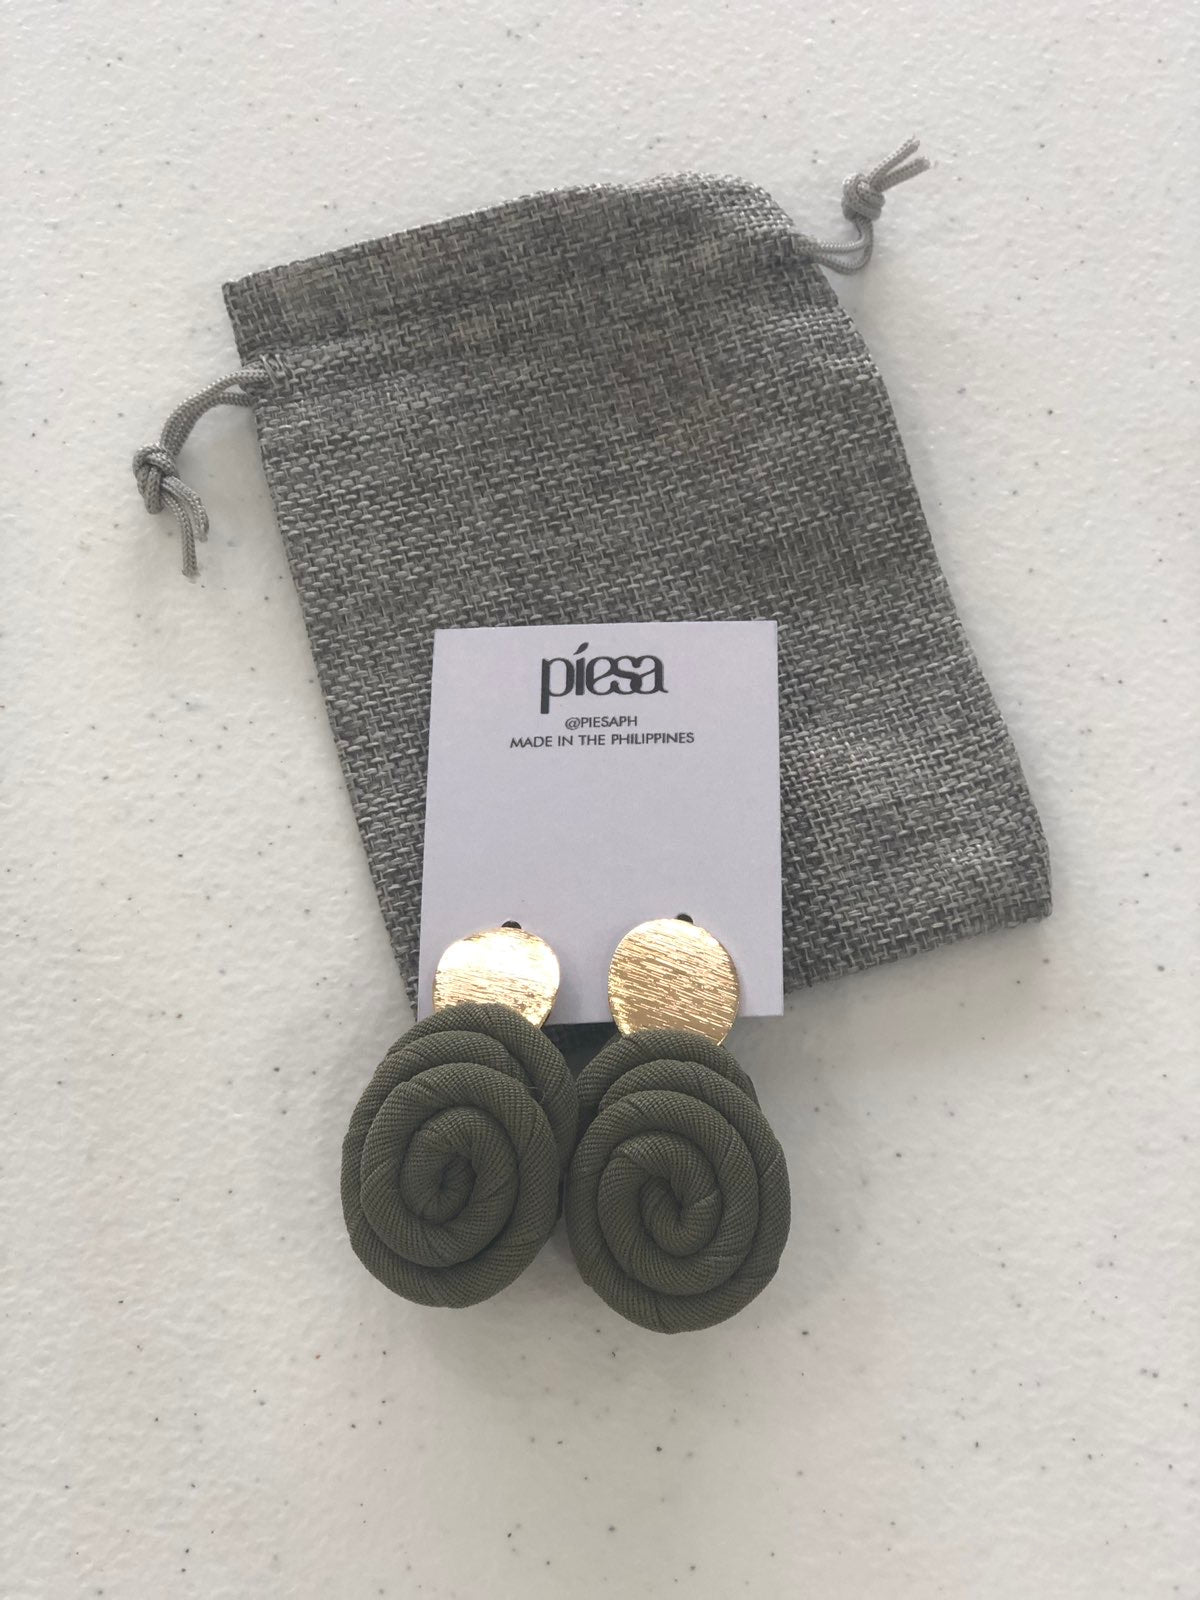 Piesa x ML earrings